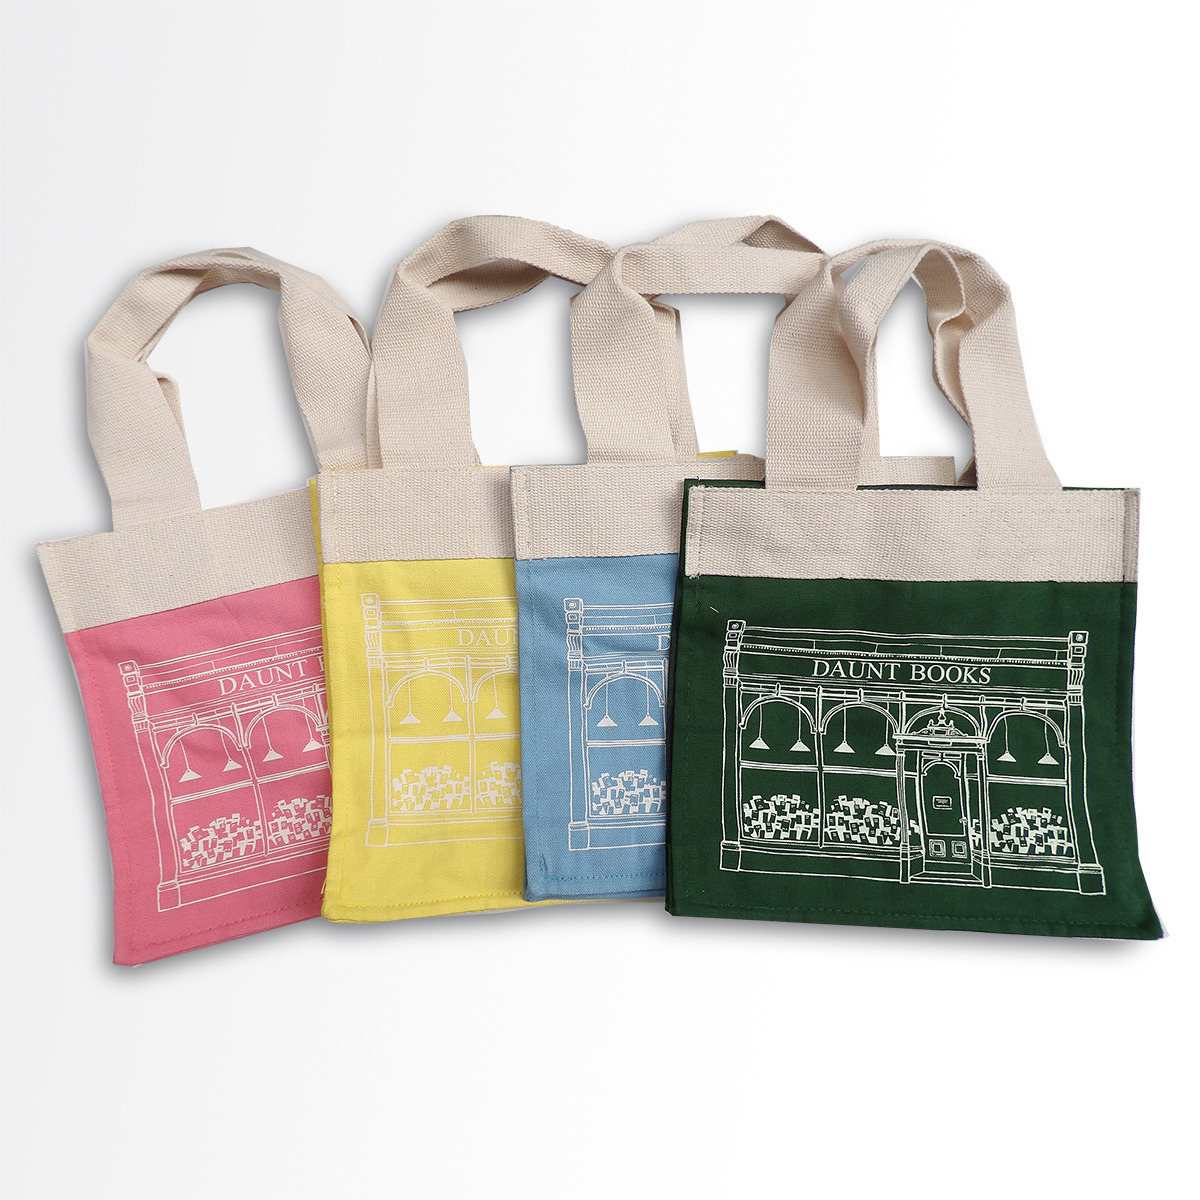 Daunt Books Children's Bag